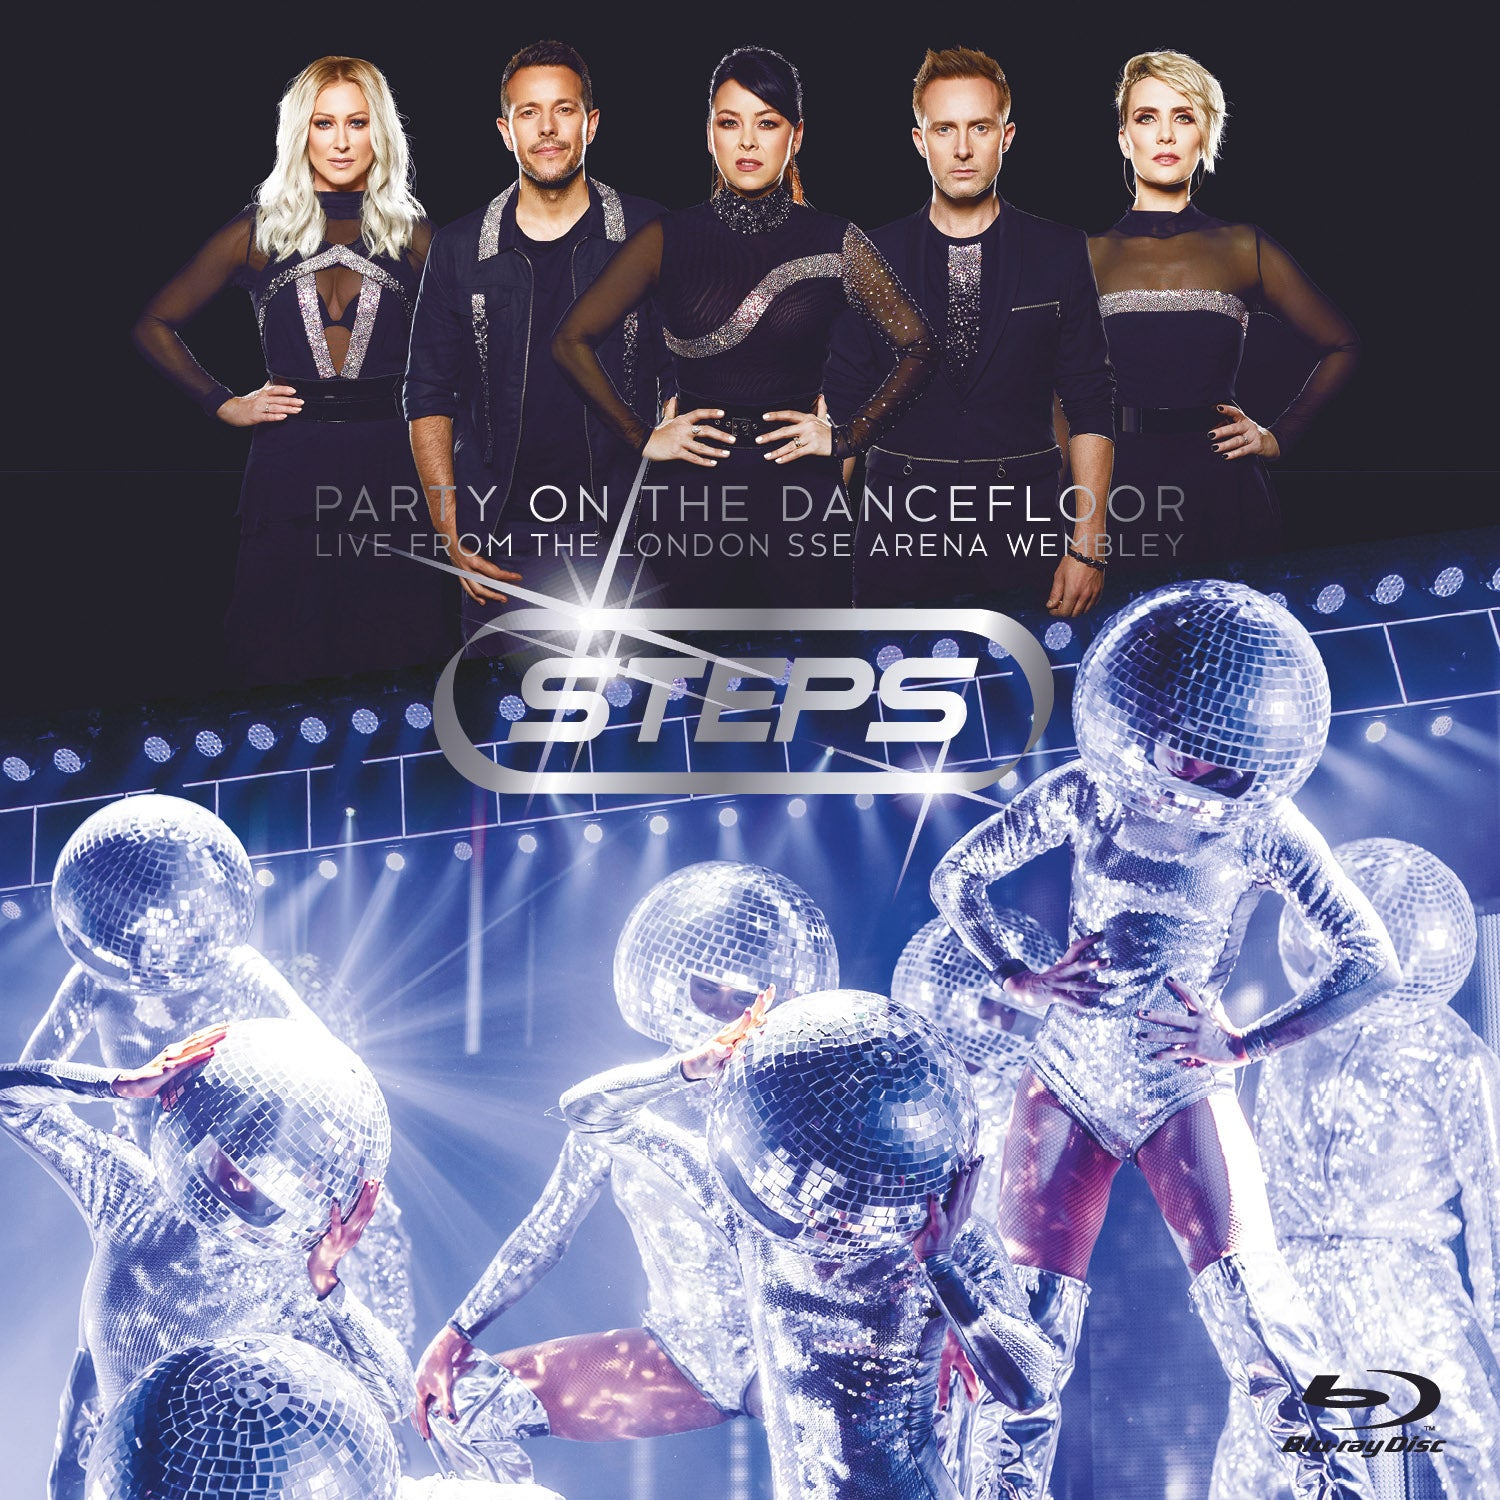 Steps - Party On The Dancefloor - Live At Wembley - BluRay Deluxe